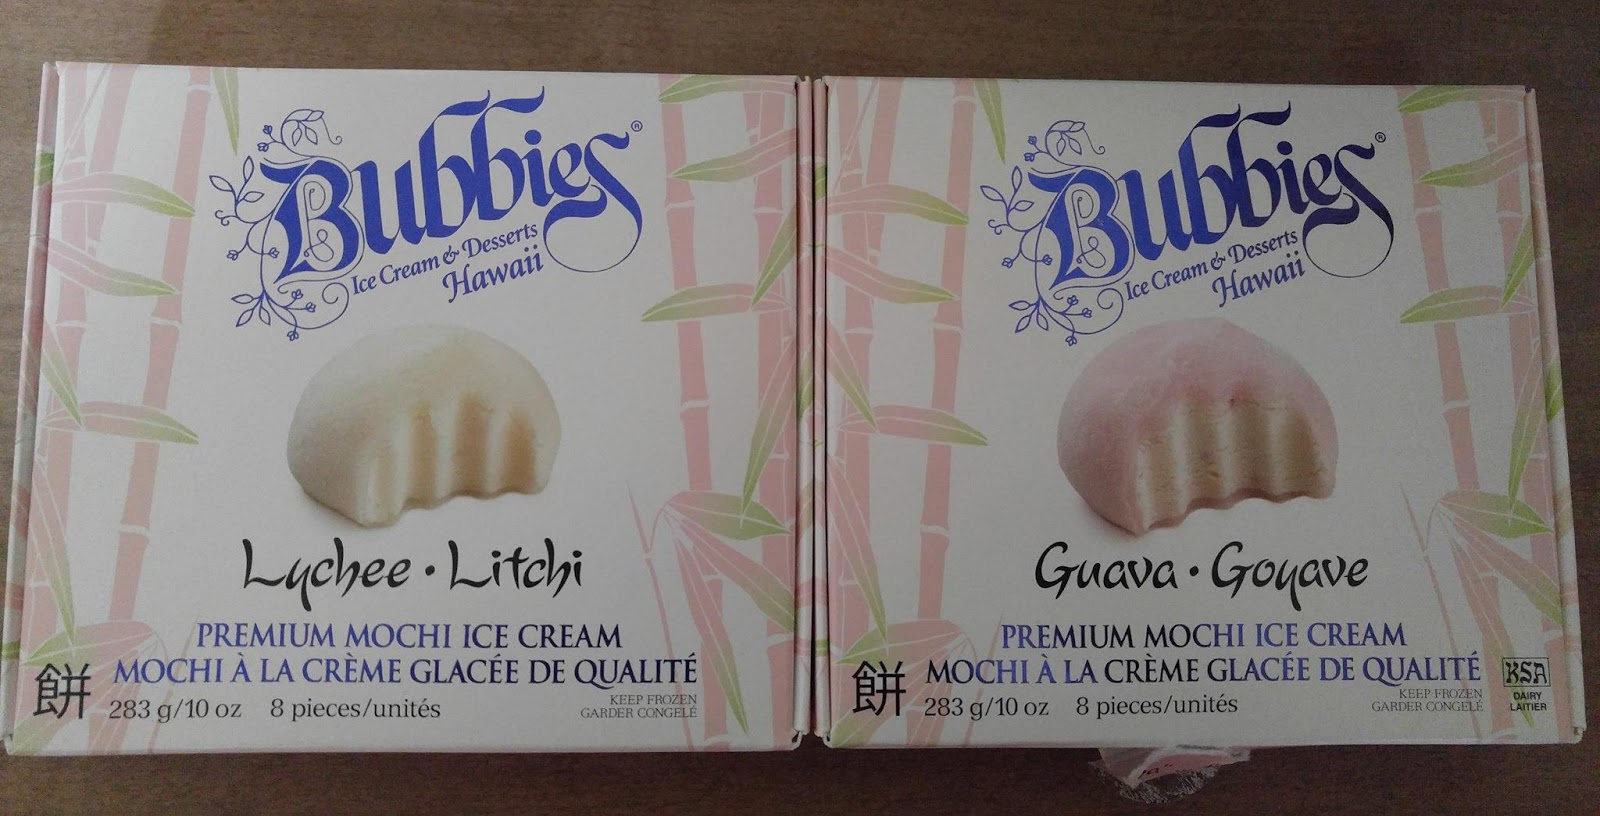 where to buy bubbies mochi ice cream